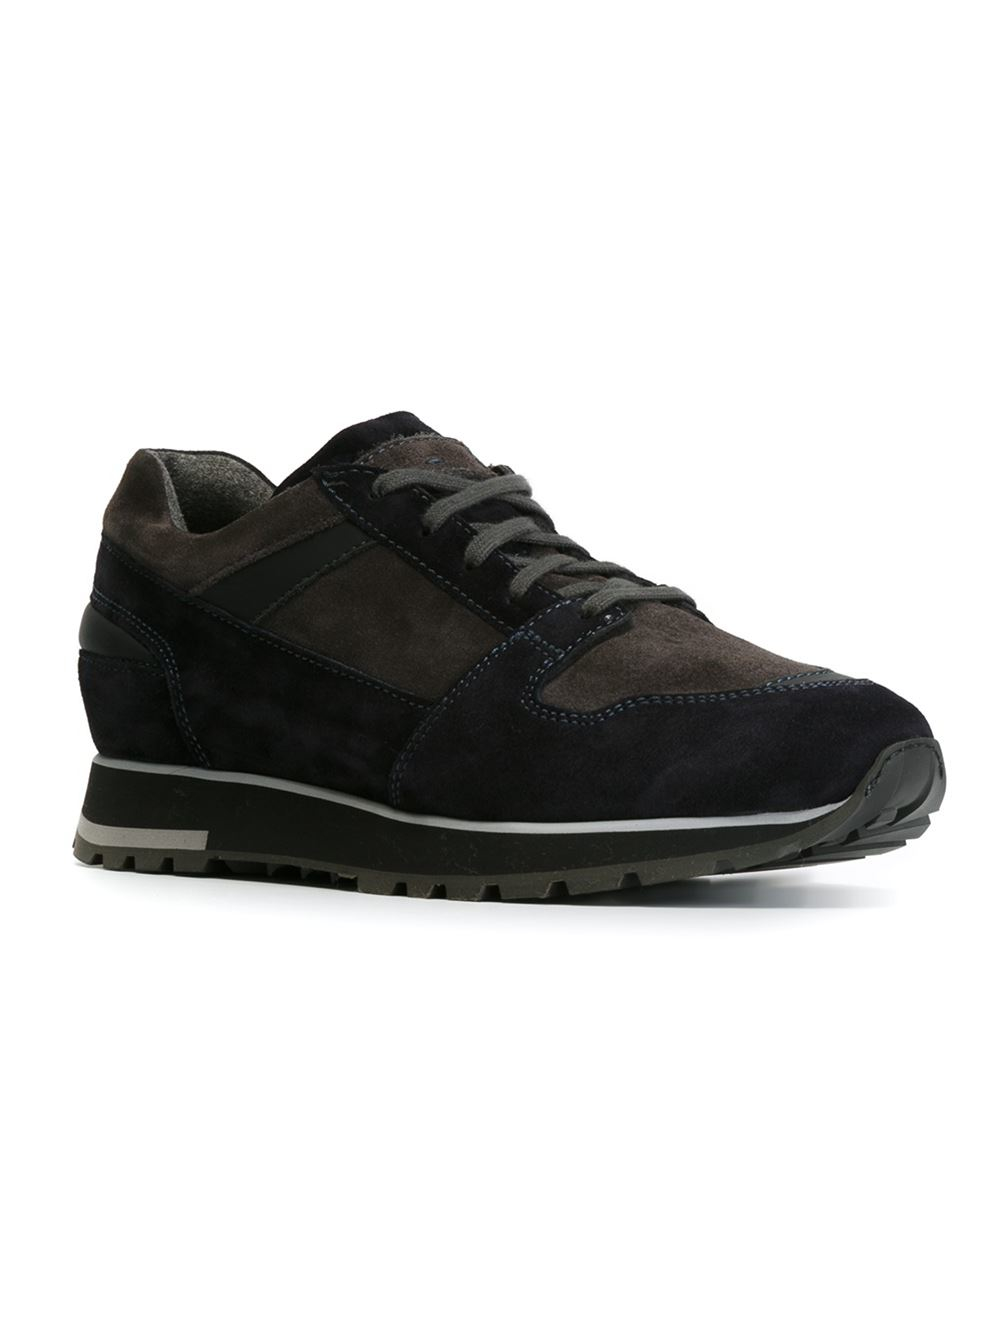 Santoni Suede Lace Up Sneaker In Black For Men Lyst